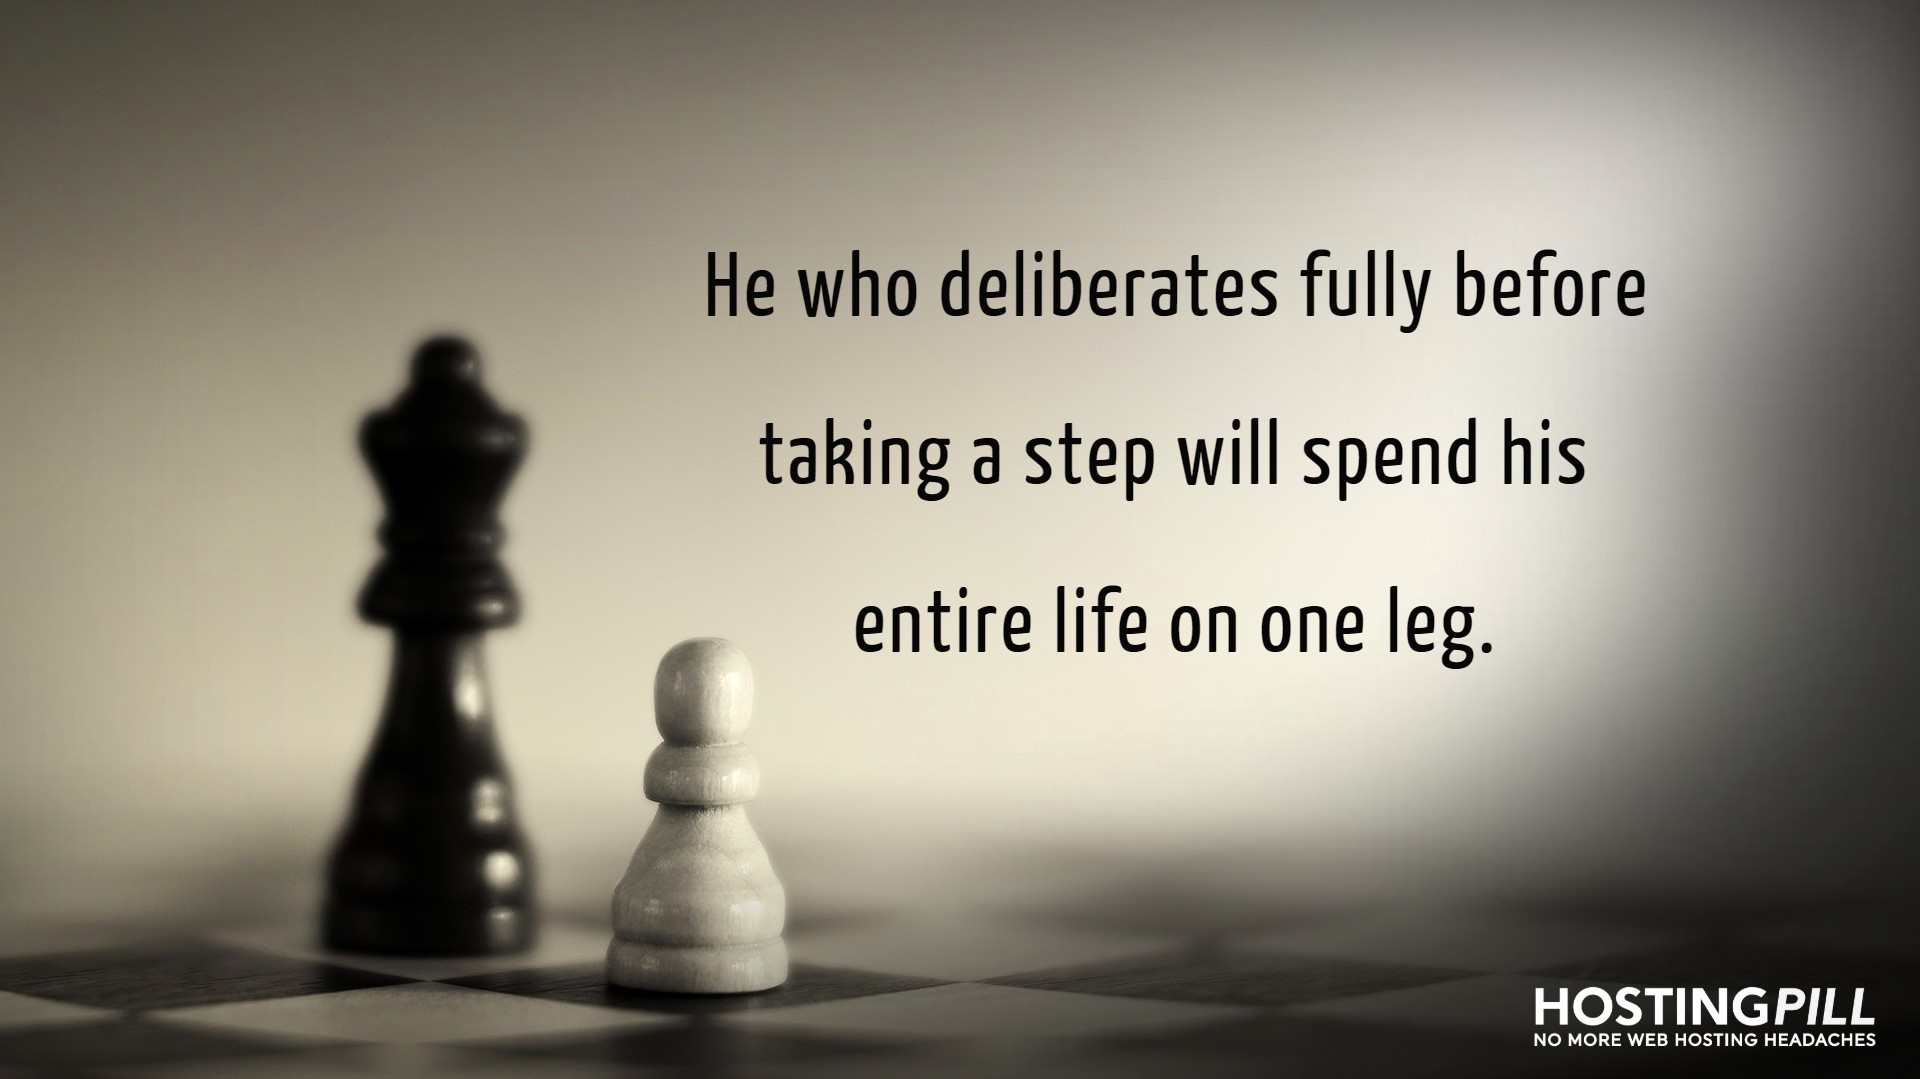 He who deliberates fully before taking a step will spend his entire life on one leg.